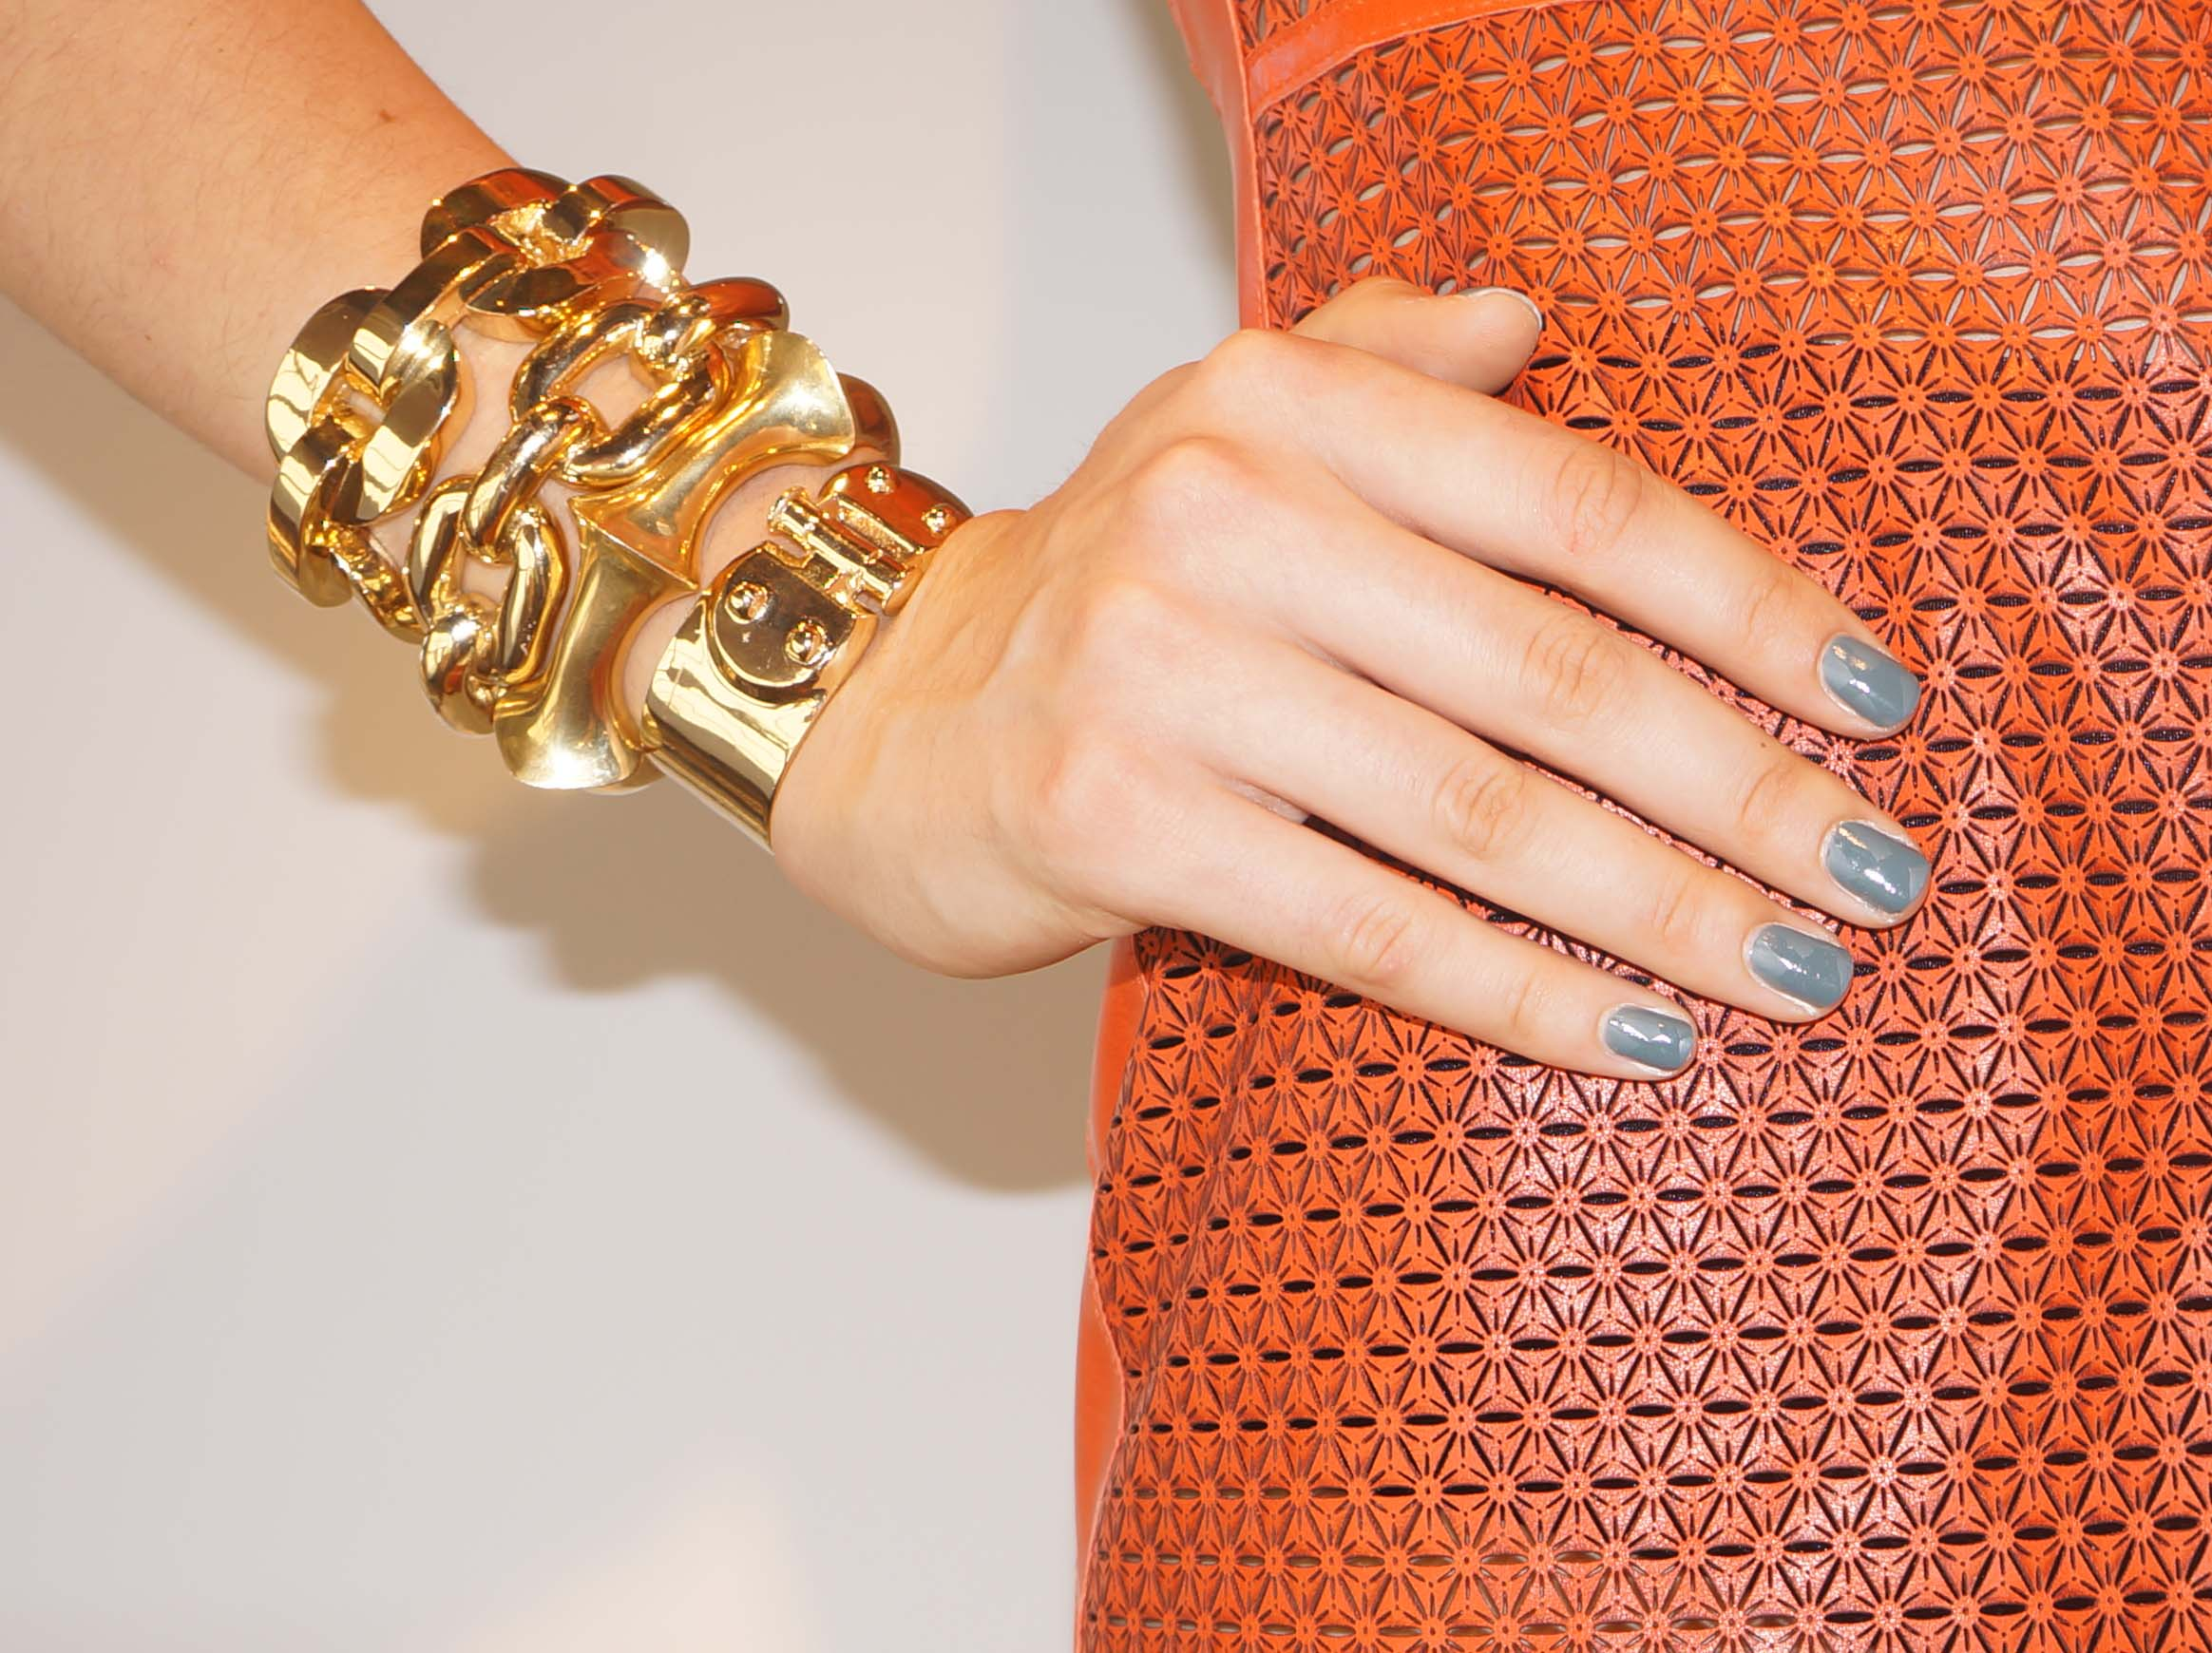 The nails compliment the neon orange dress